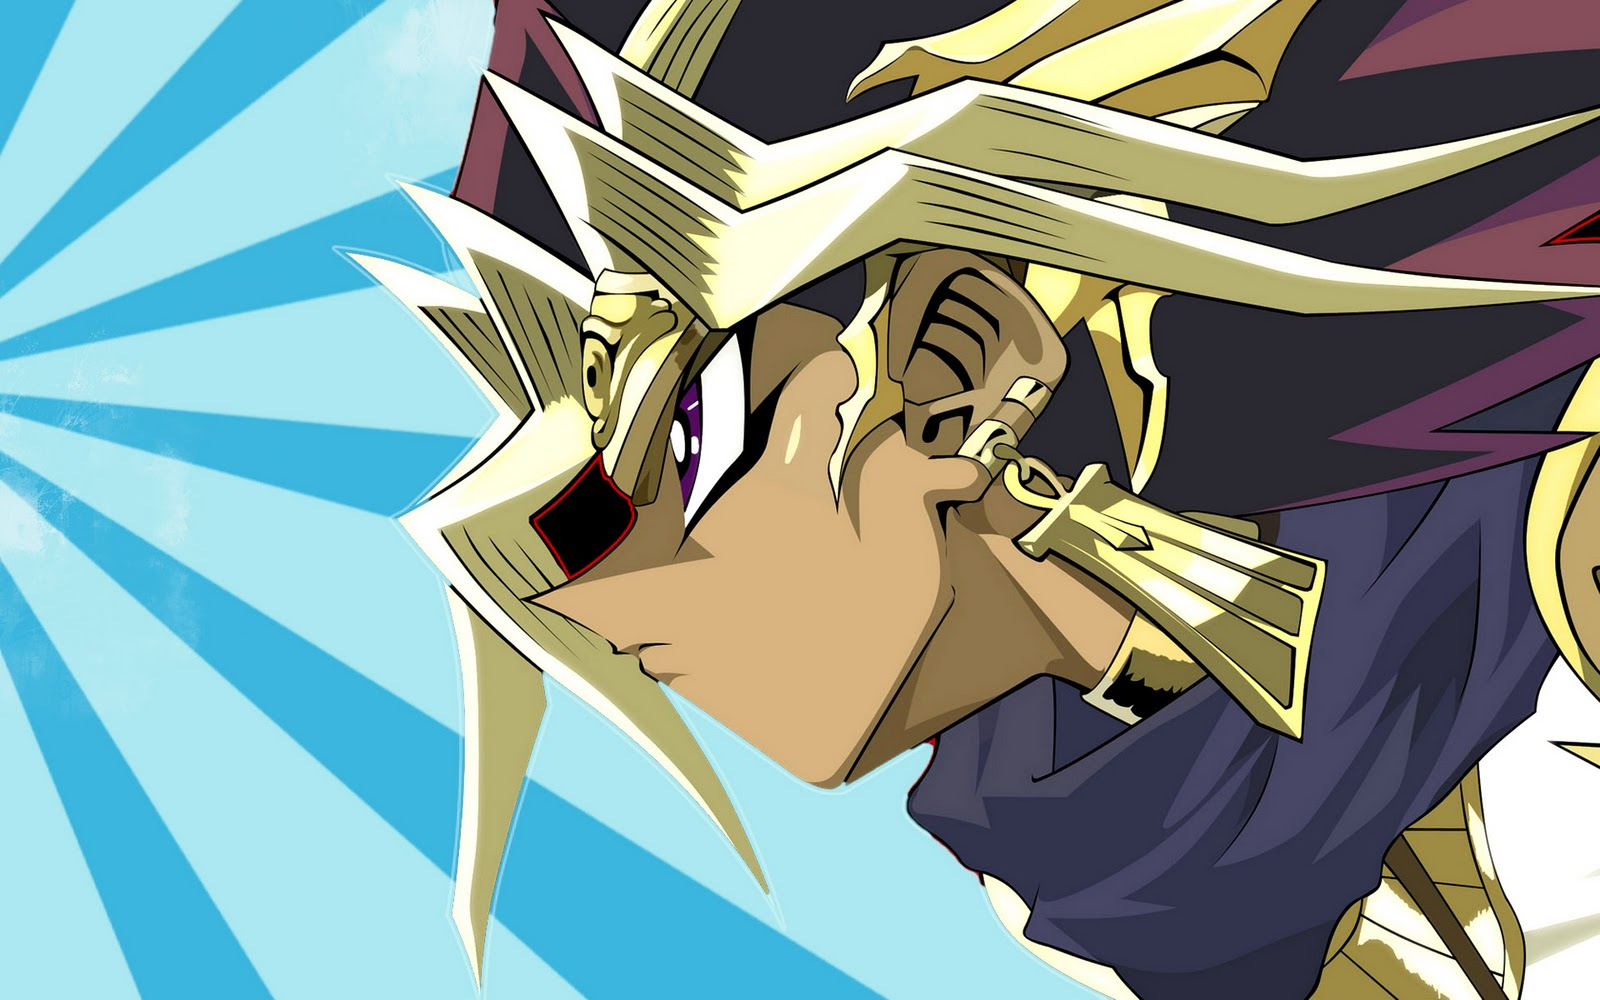 Yu Gi Oh HD Anime Wallpapers Download Wallpapers in HD for your 1600x1000